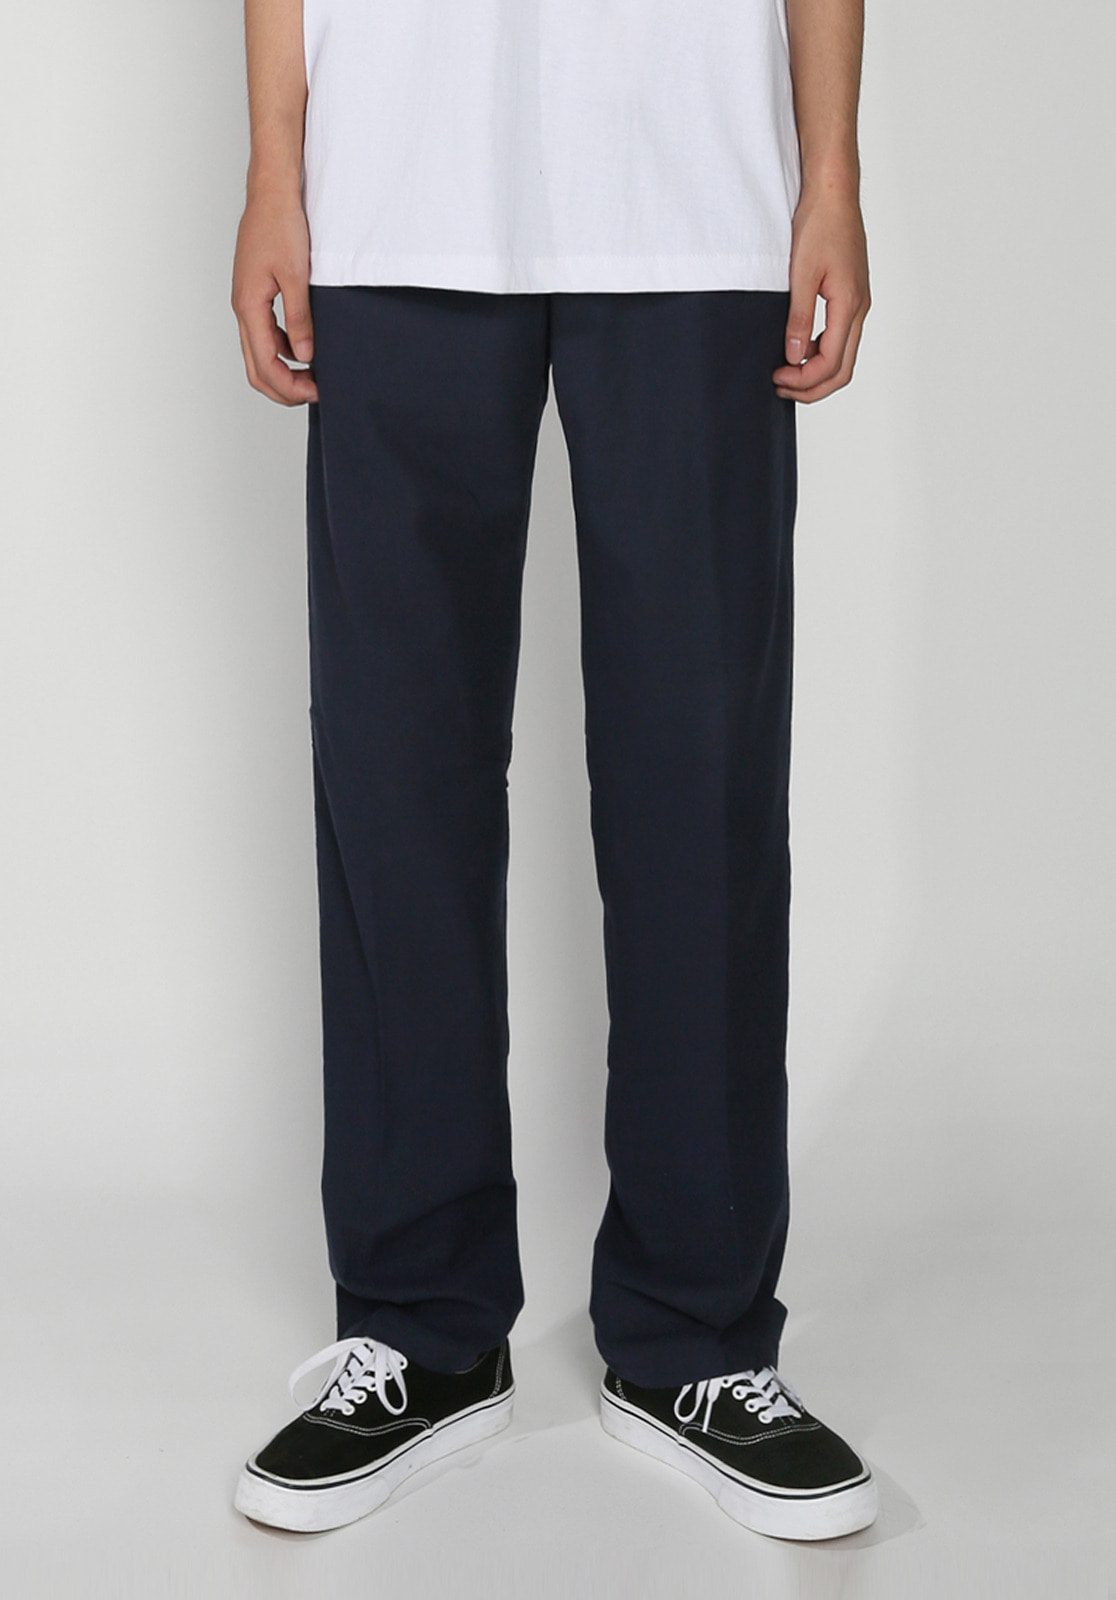 V278 BASIC LINEN BANDDING PANTS  NAVY